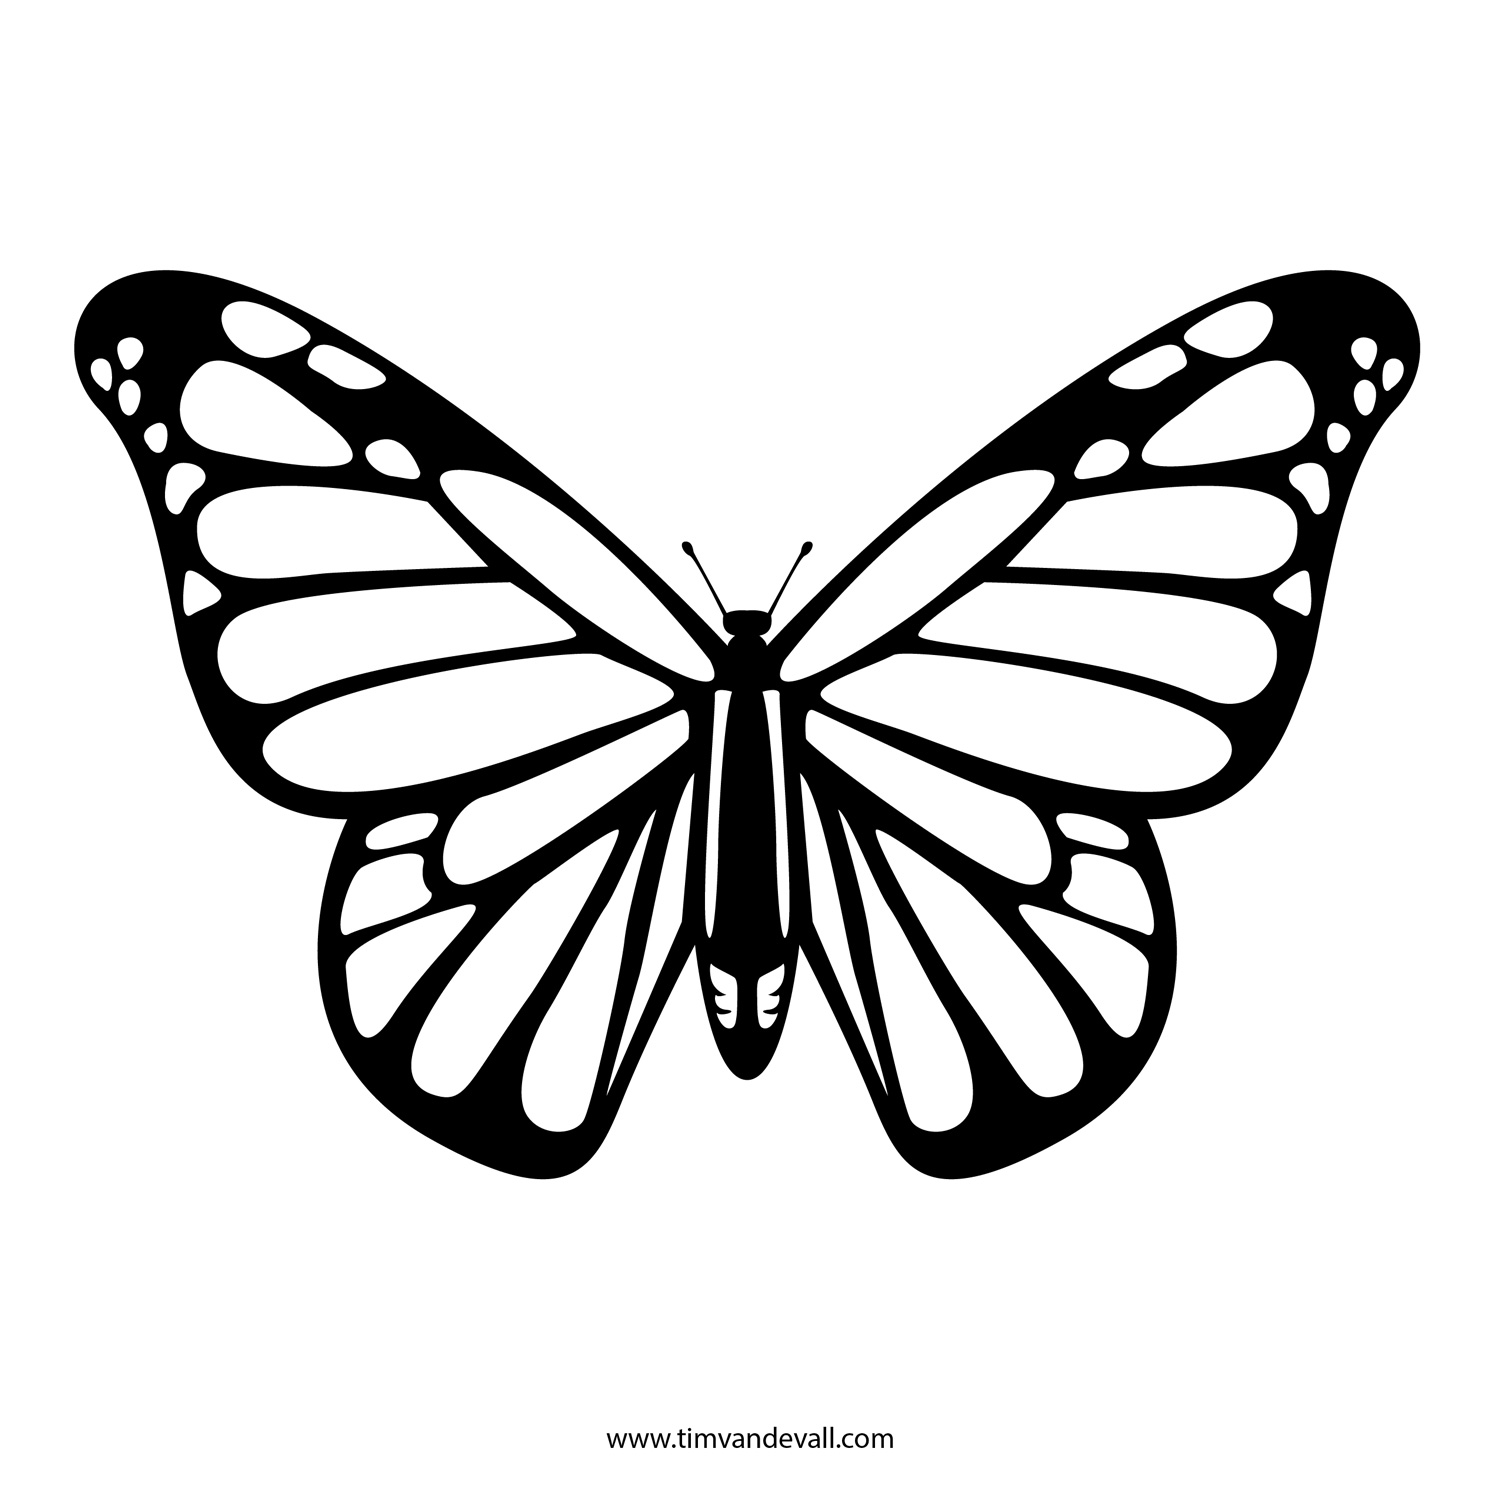 Free Monarch Butterfly Drawing Download Free Clip Art Free Clip Art On Clipart Library